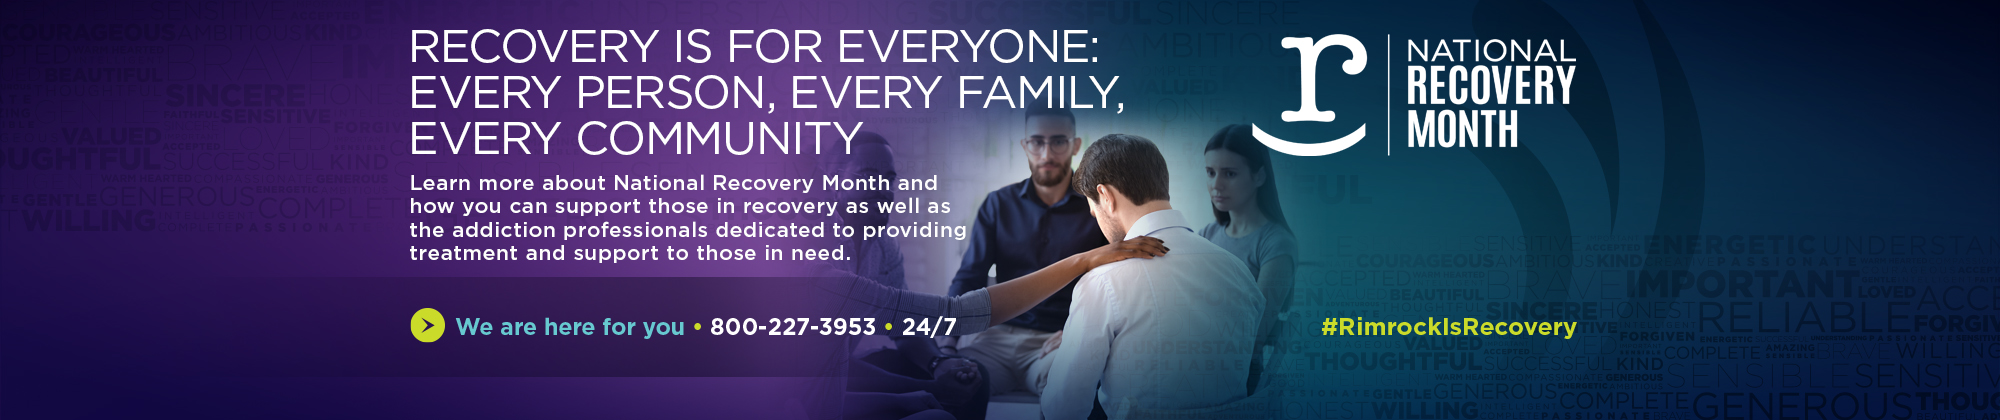 Rimrock - Rimrock is Recovery - Recovery Month